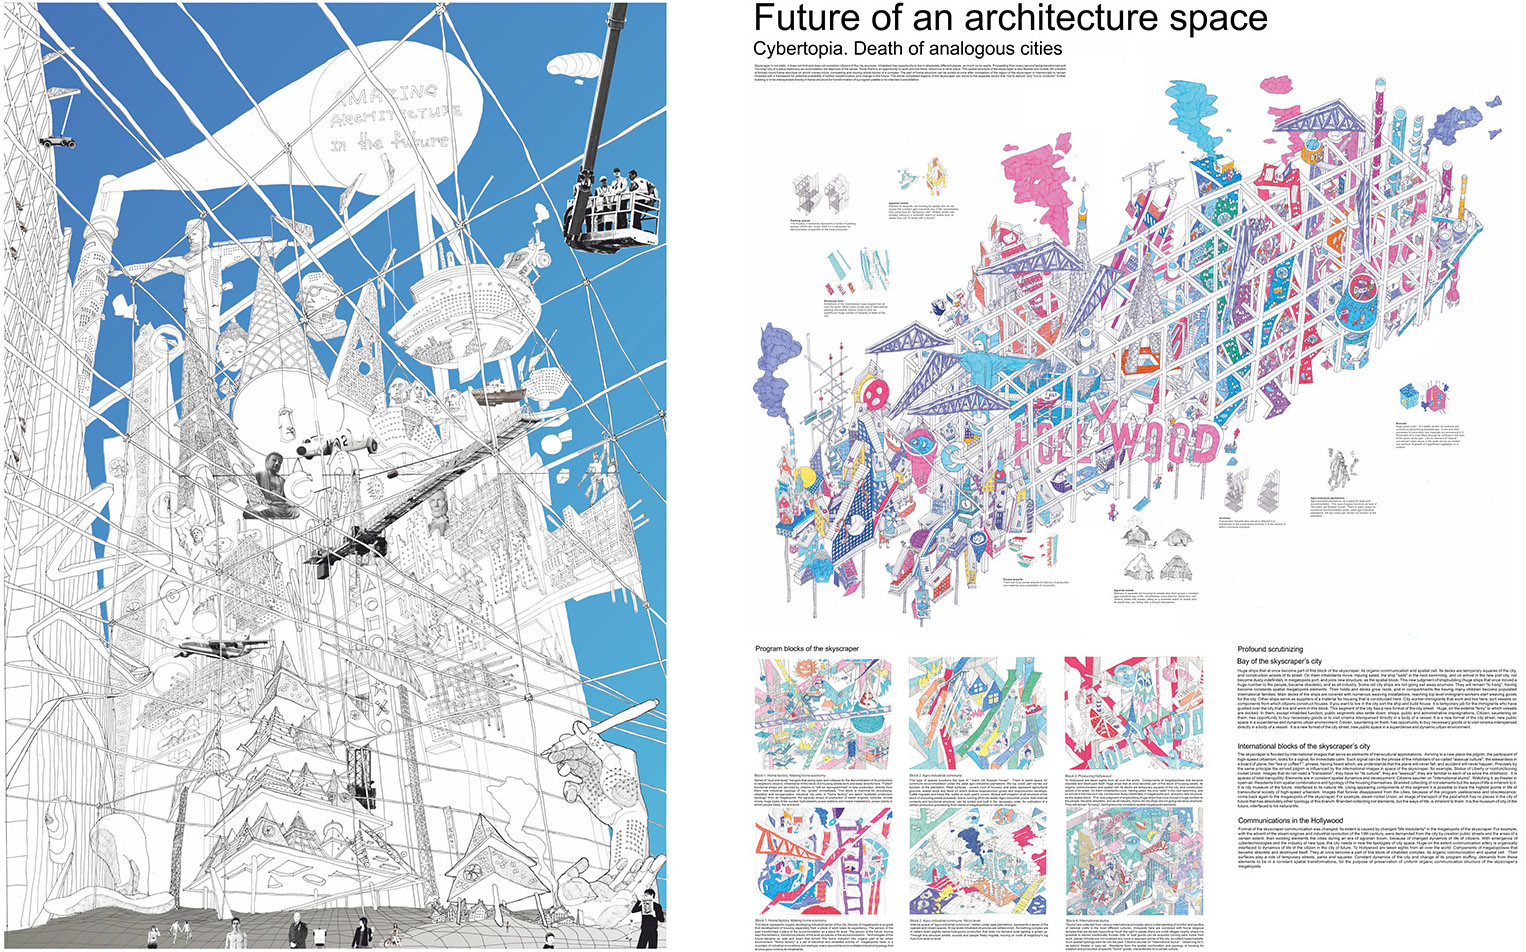 """Cybertopia: Future of an Architecture Space, Death of Analogous Cities"" / Egor Orlov"